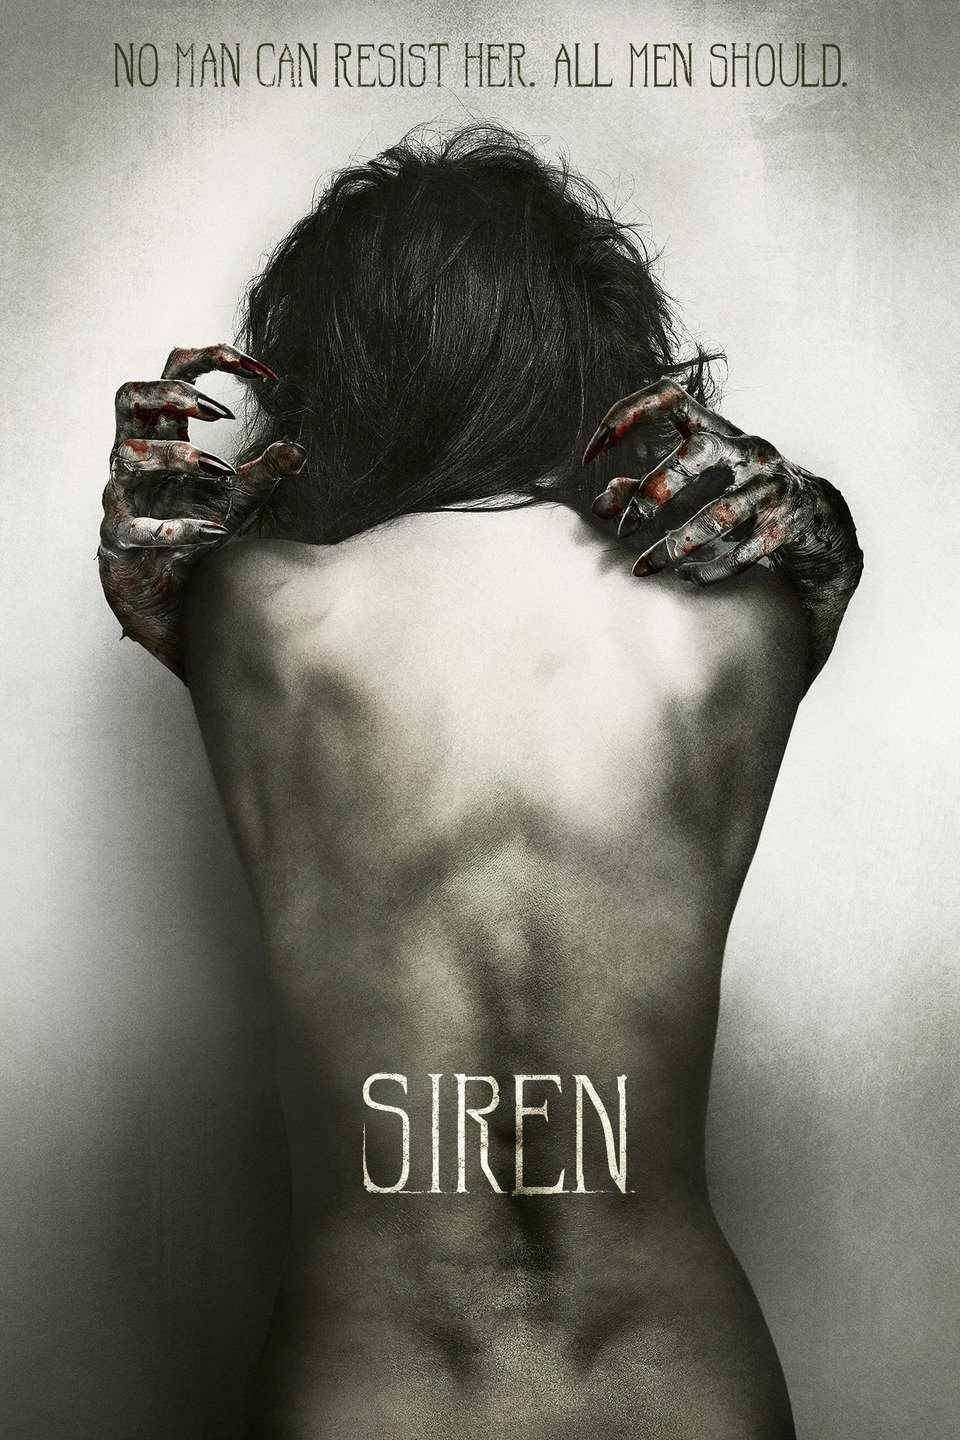 Download Siren (2016) English (Eng Subs) DVDRip 480p | 720p